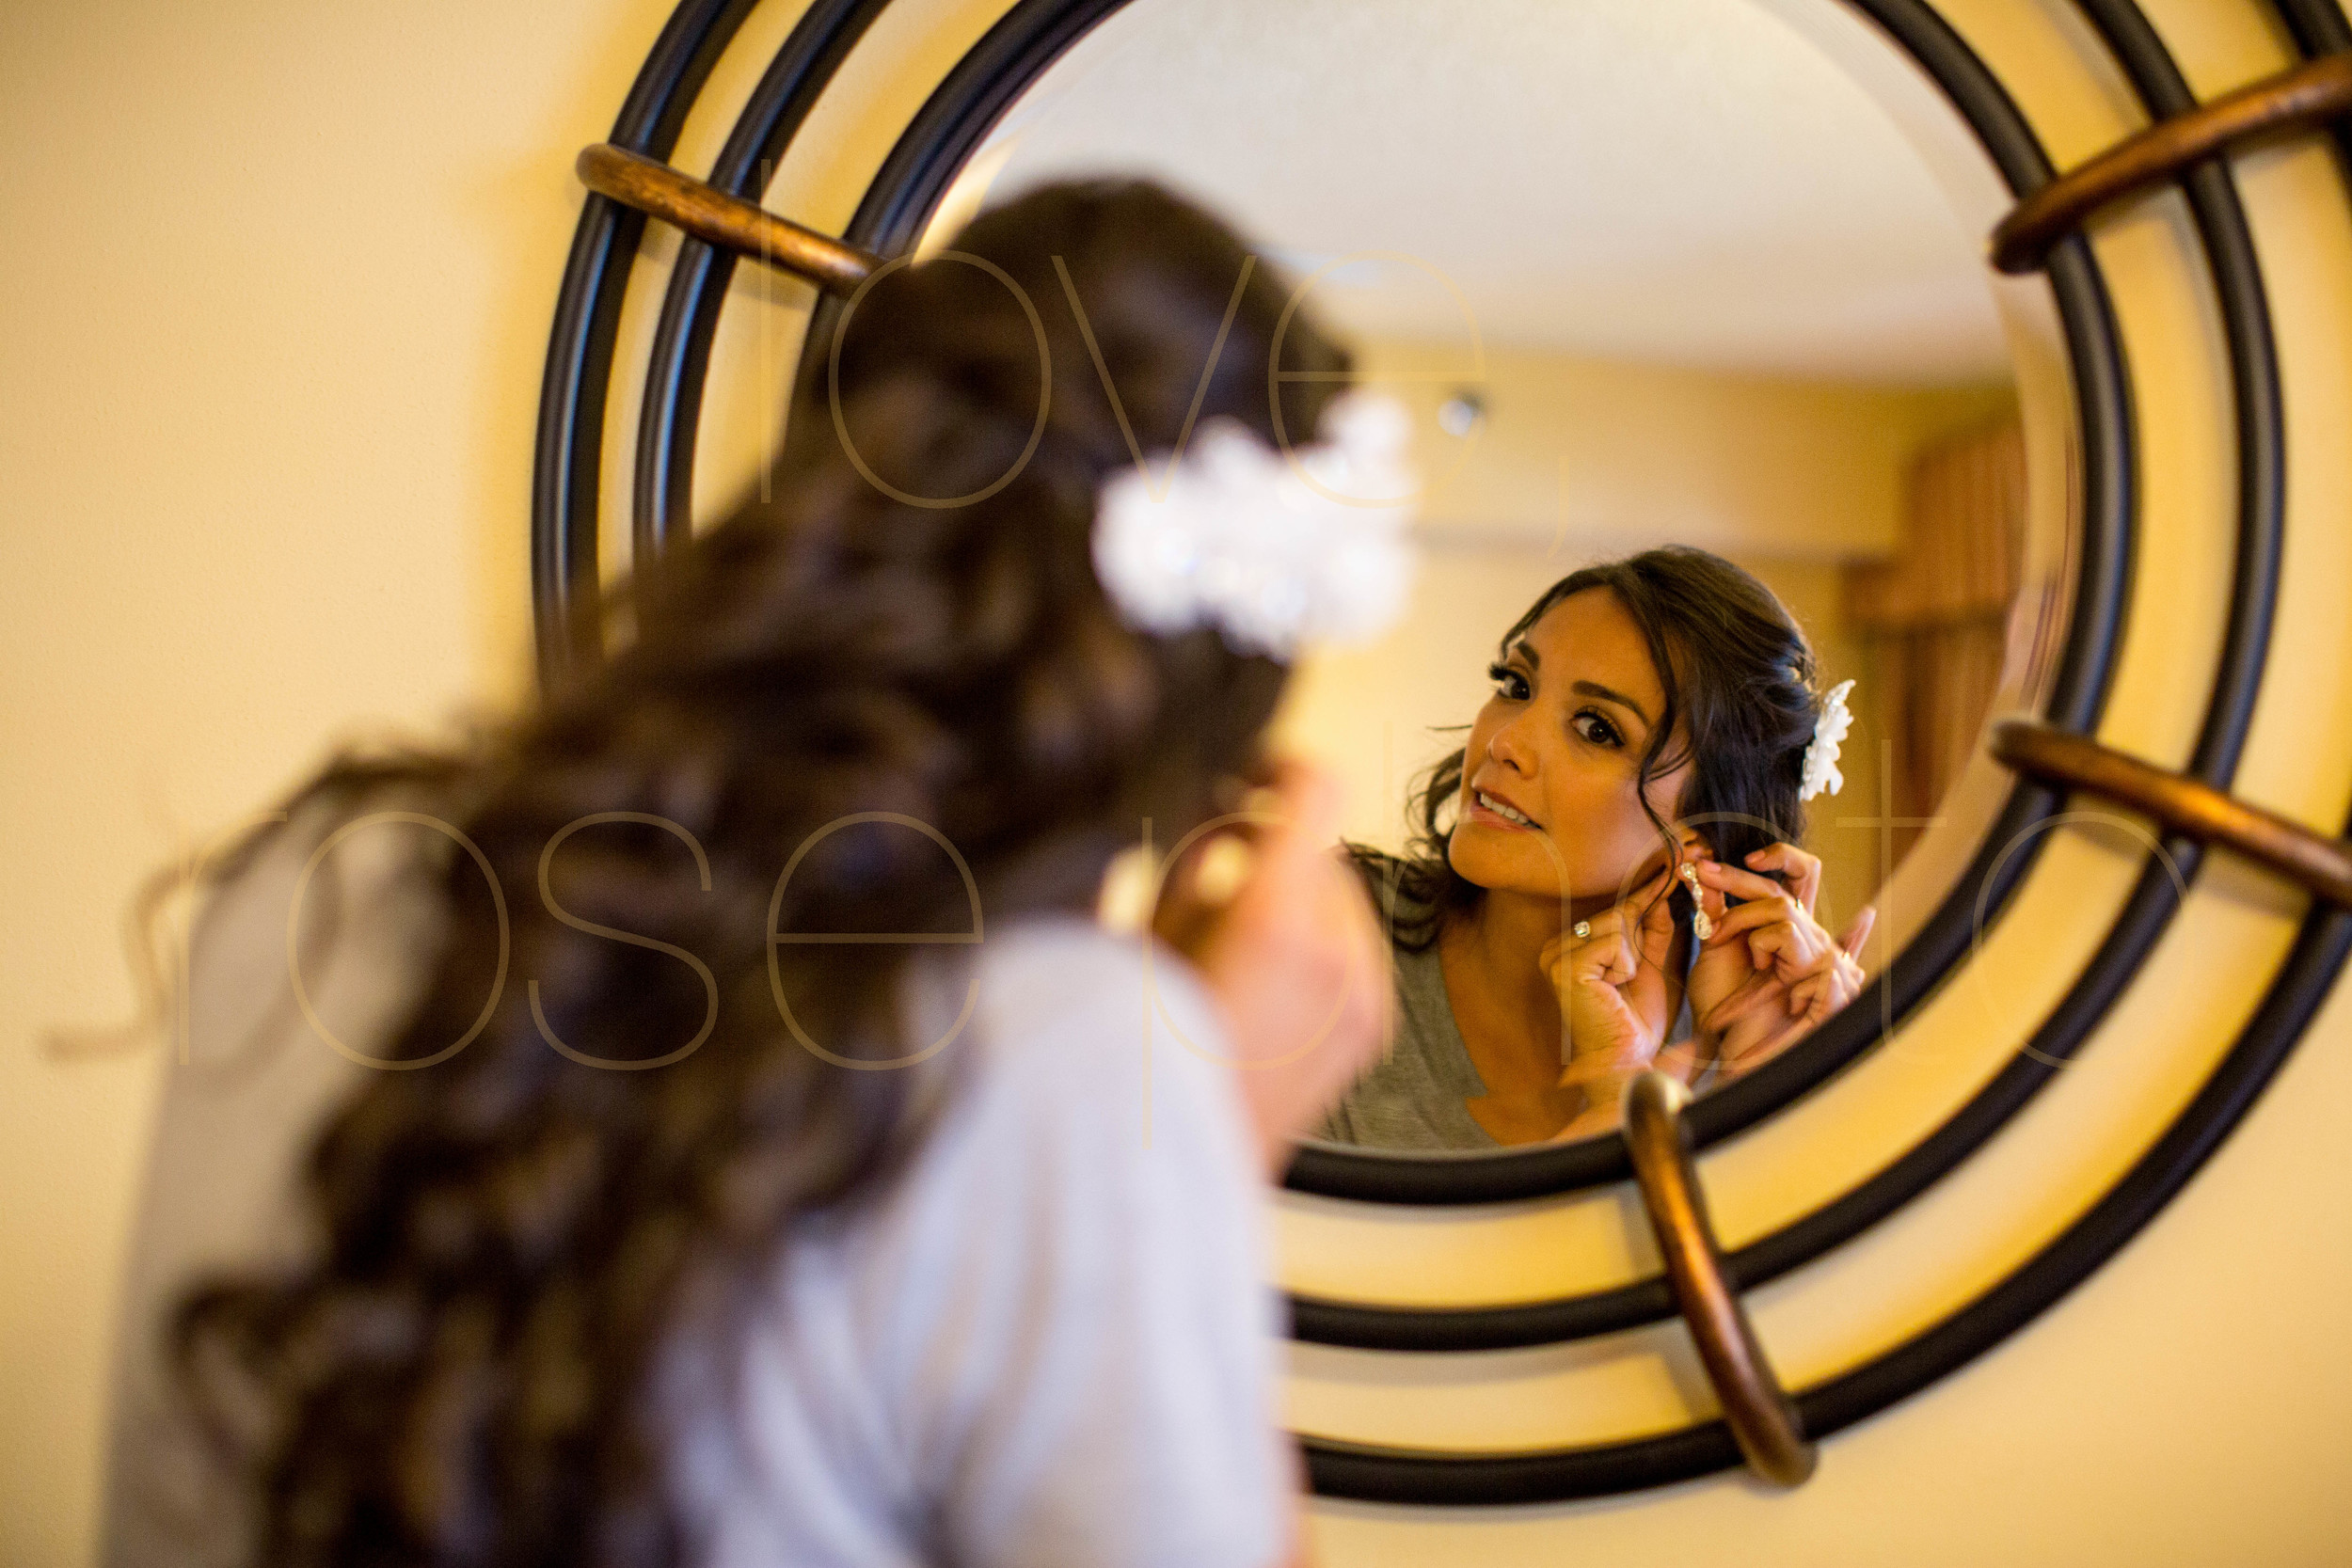 Claudia + Grant Heidel House Wiscon lake wedding best of chicago wedding photographers -1.jpg